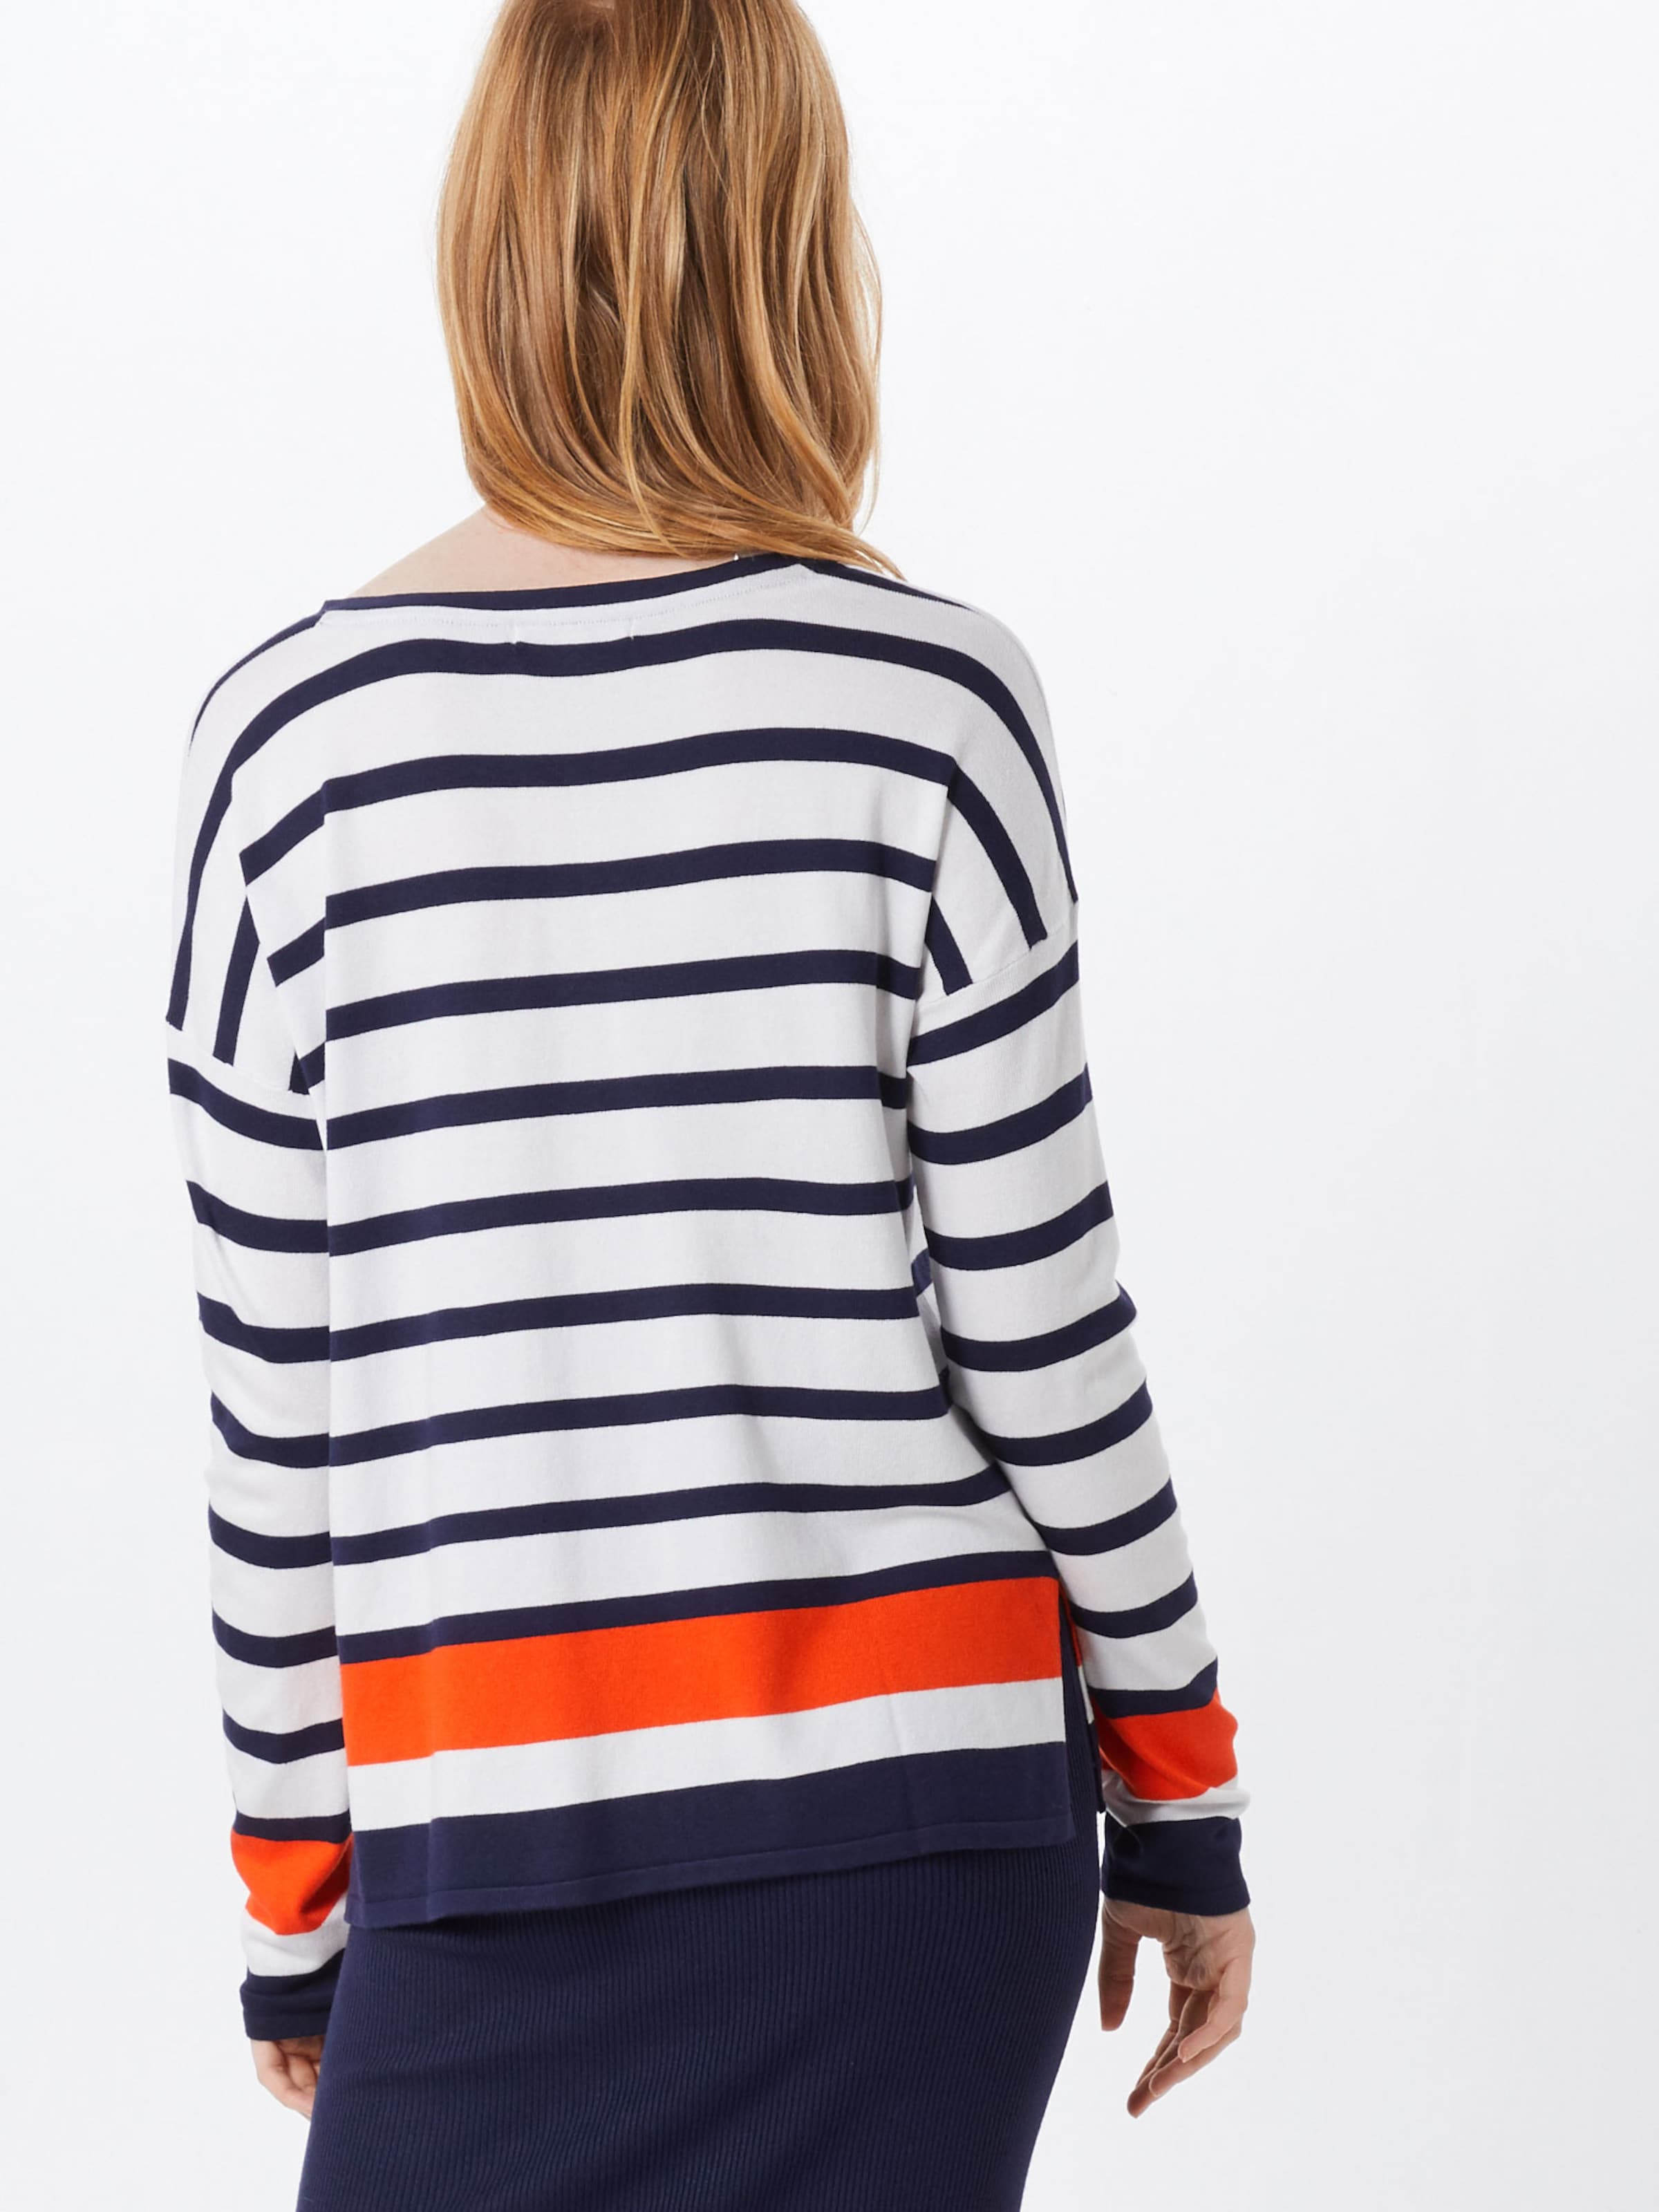 Tailor Blanc Pull Denim BleuHomard En Tom over cj3qS54ARL